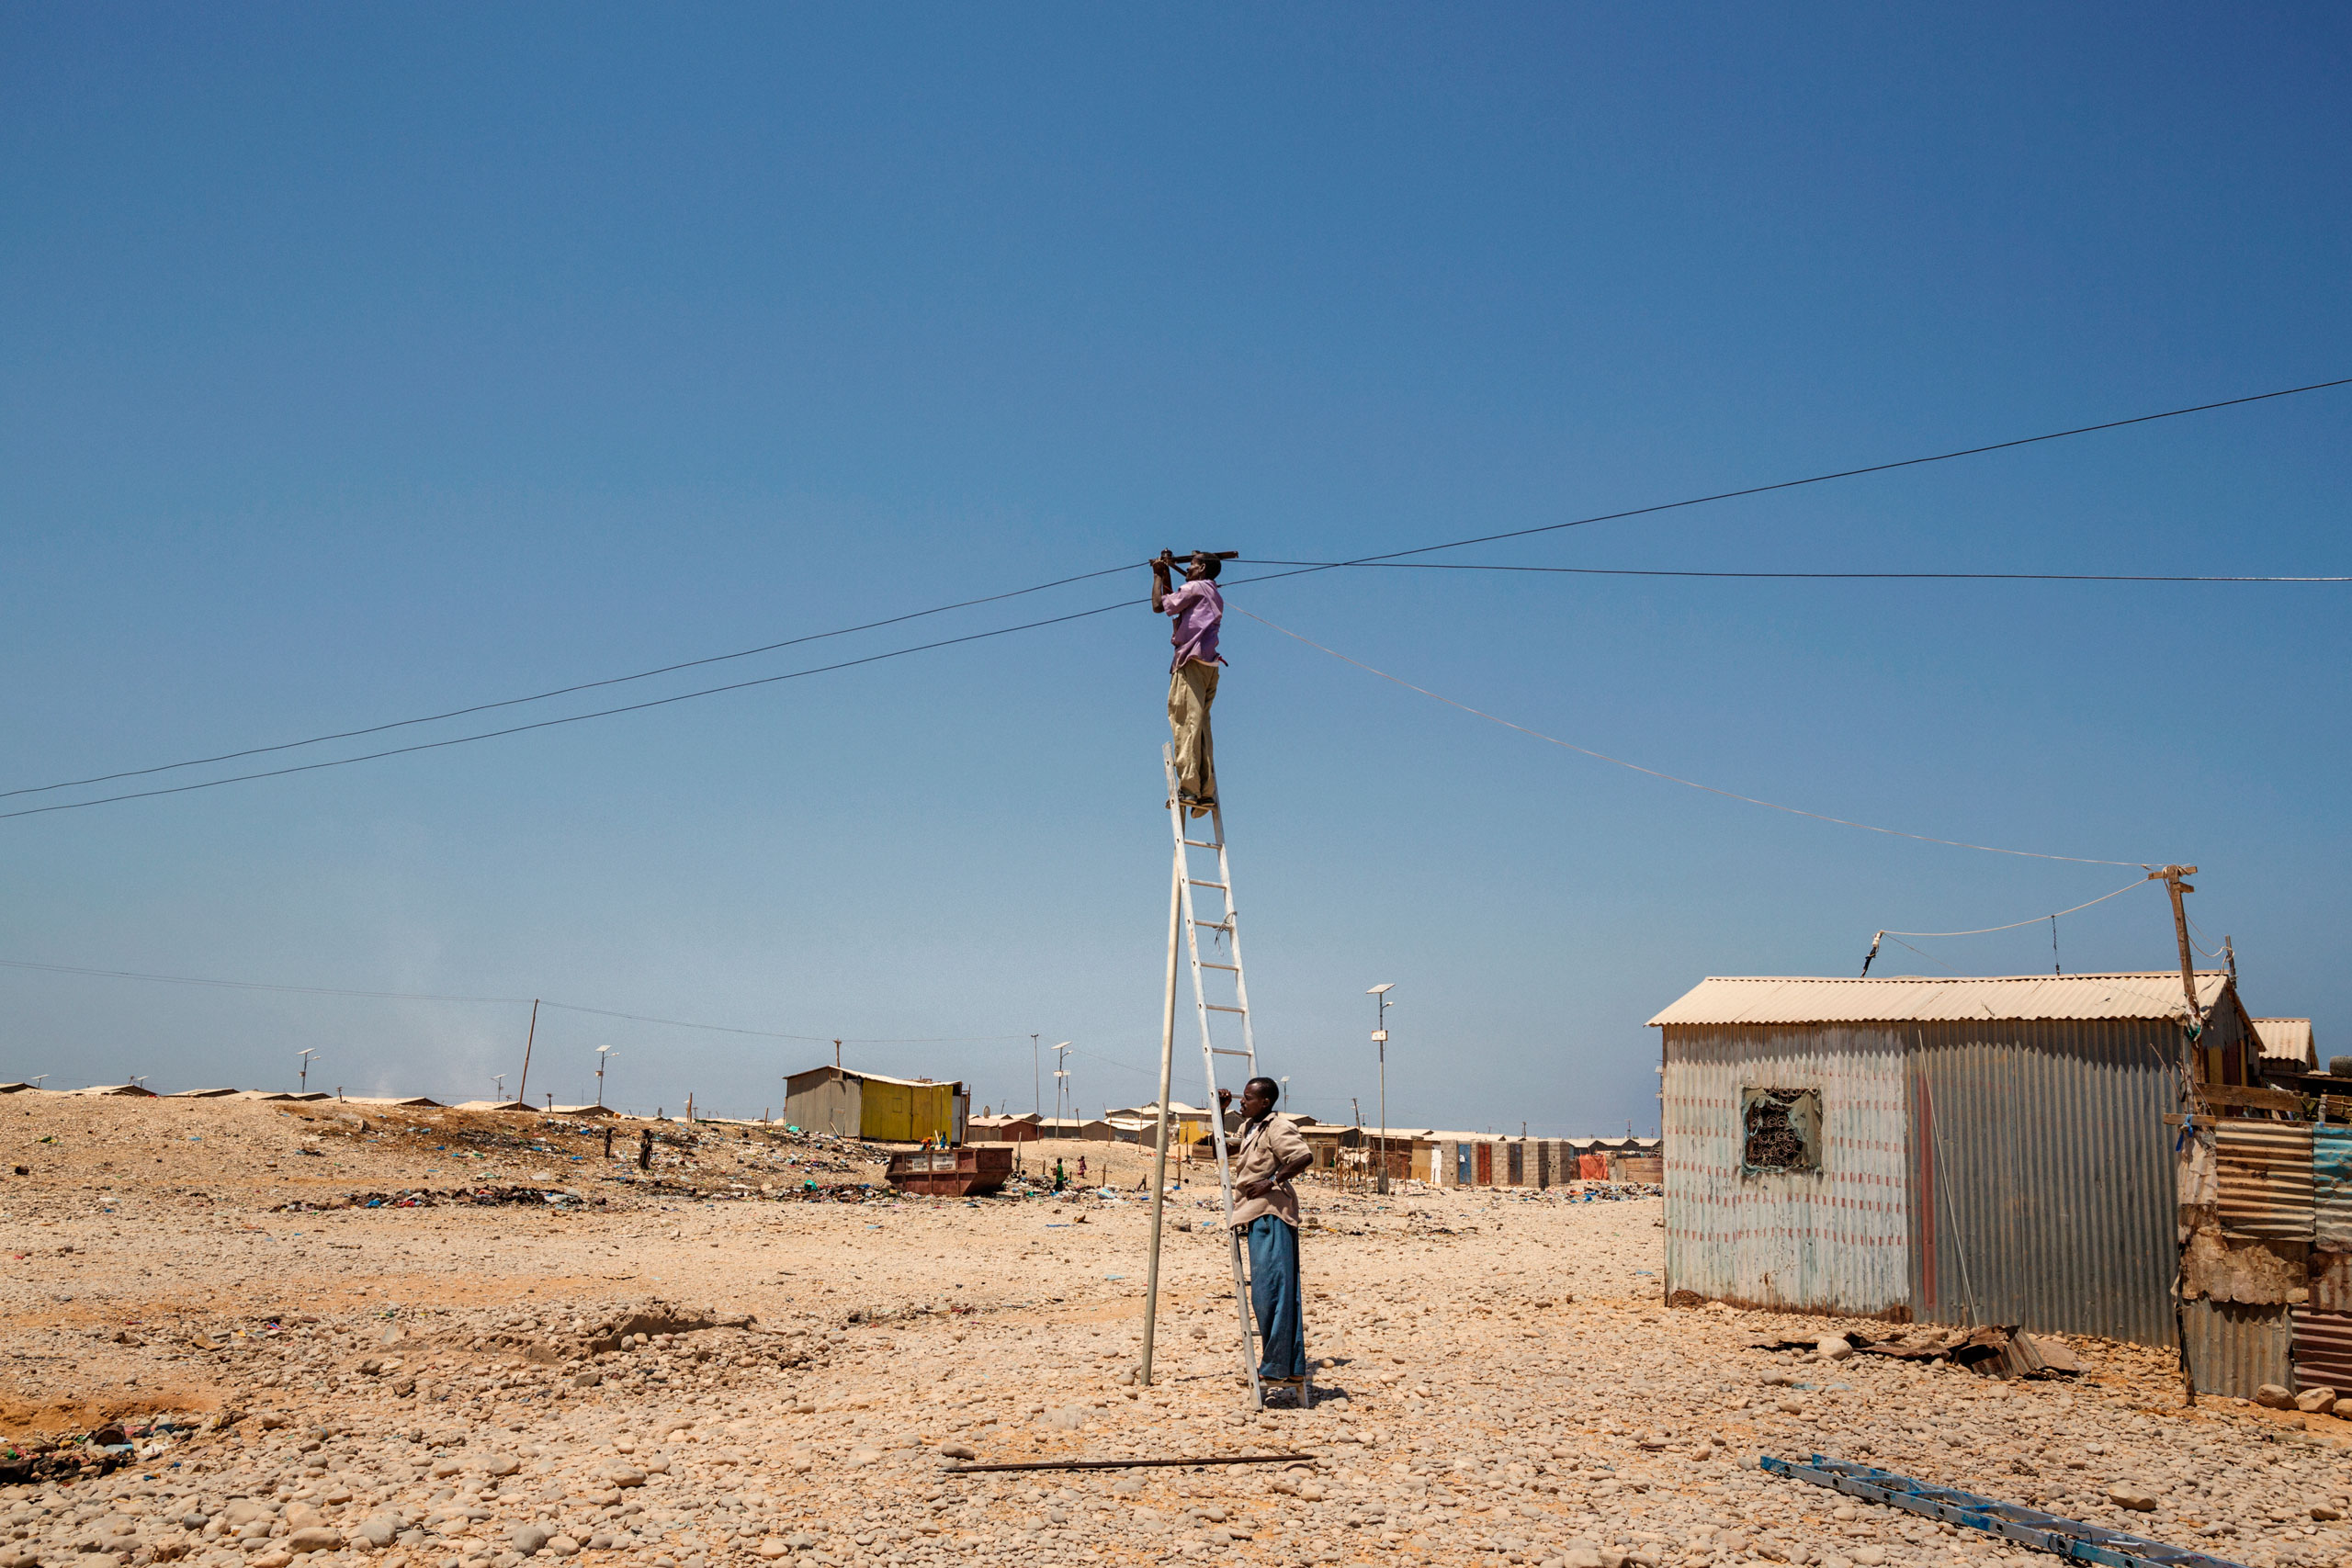 Two men working on a light pole in the Buulo Mingis camp for internally displaced people located in Bosaso, in the north-east region of Somalia. October 5, 2015.